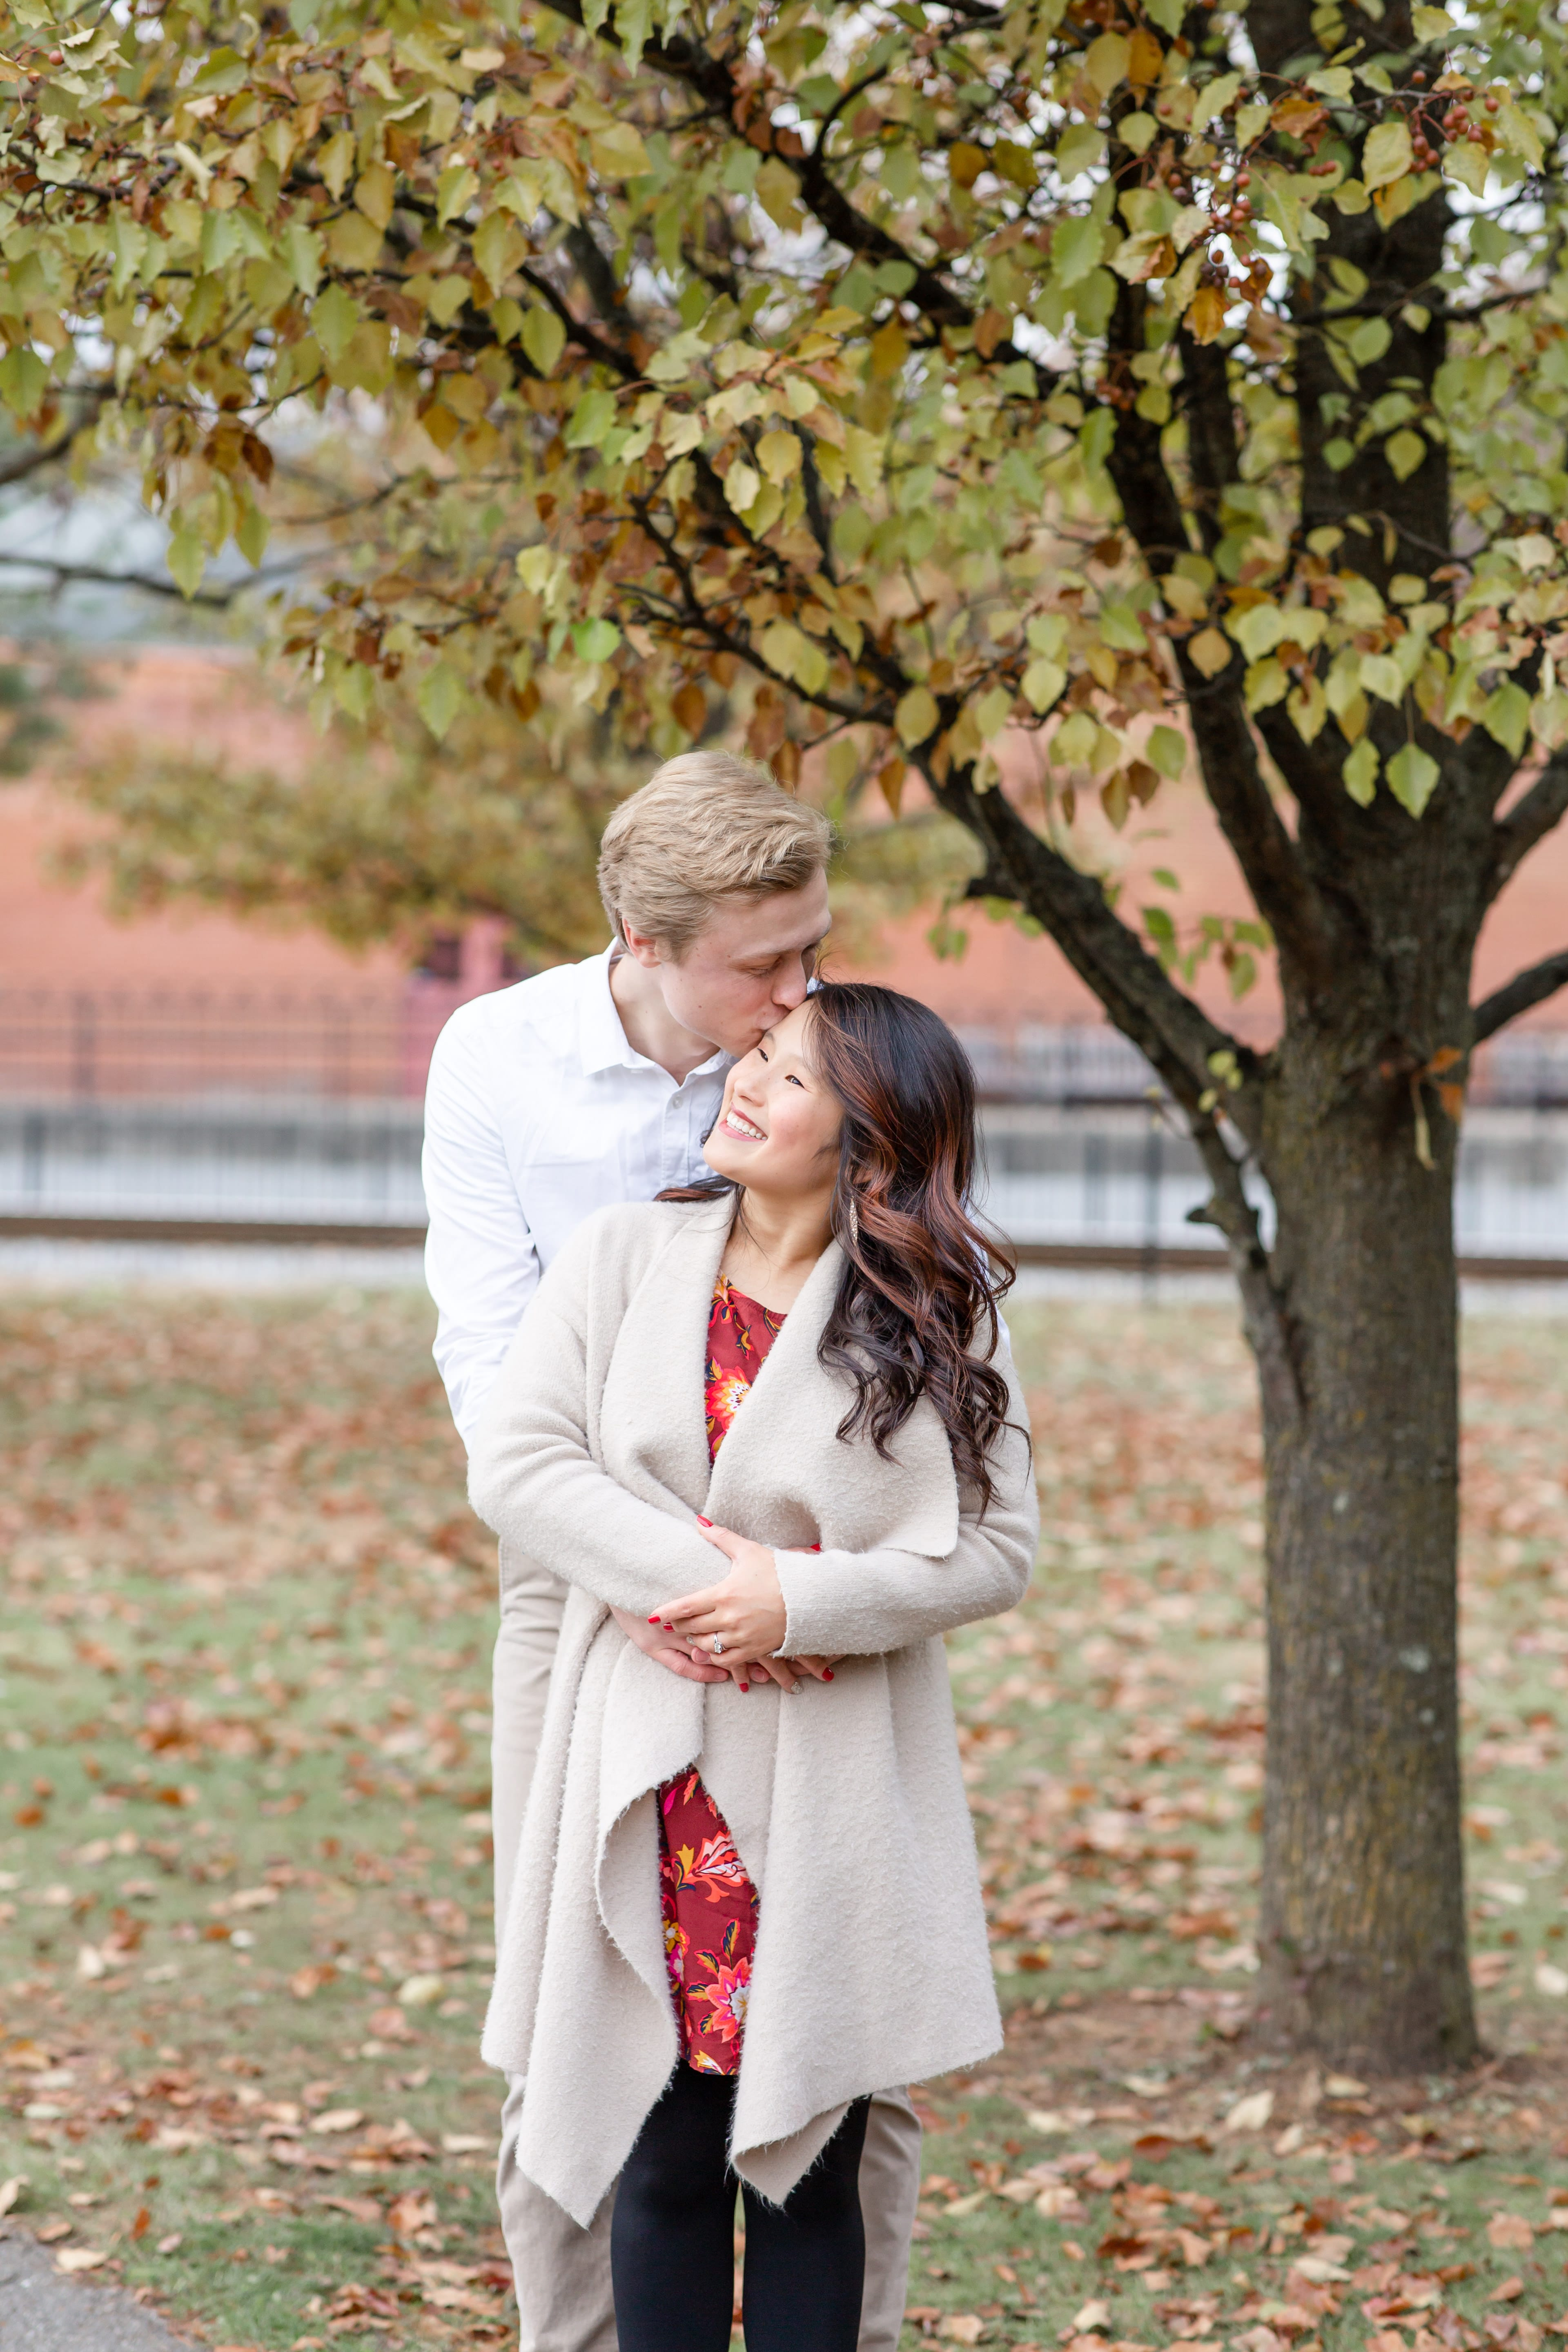 Engaged couple with a fall tree at Talleyrand Park in Bellefonte